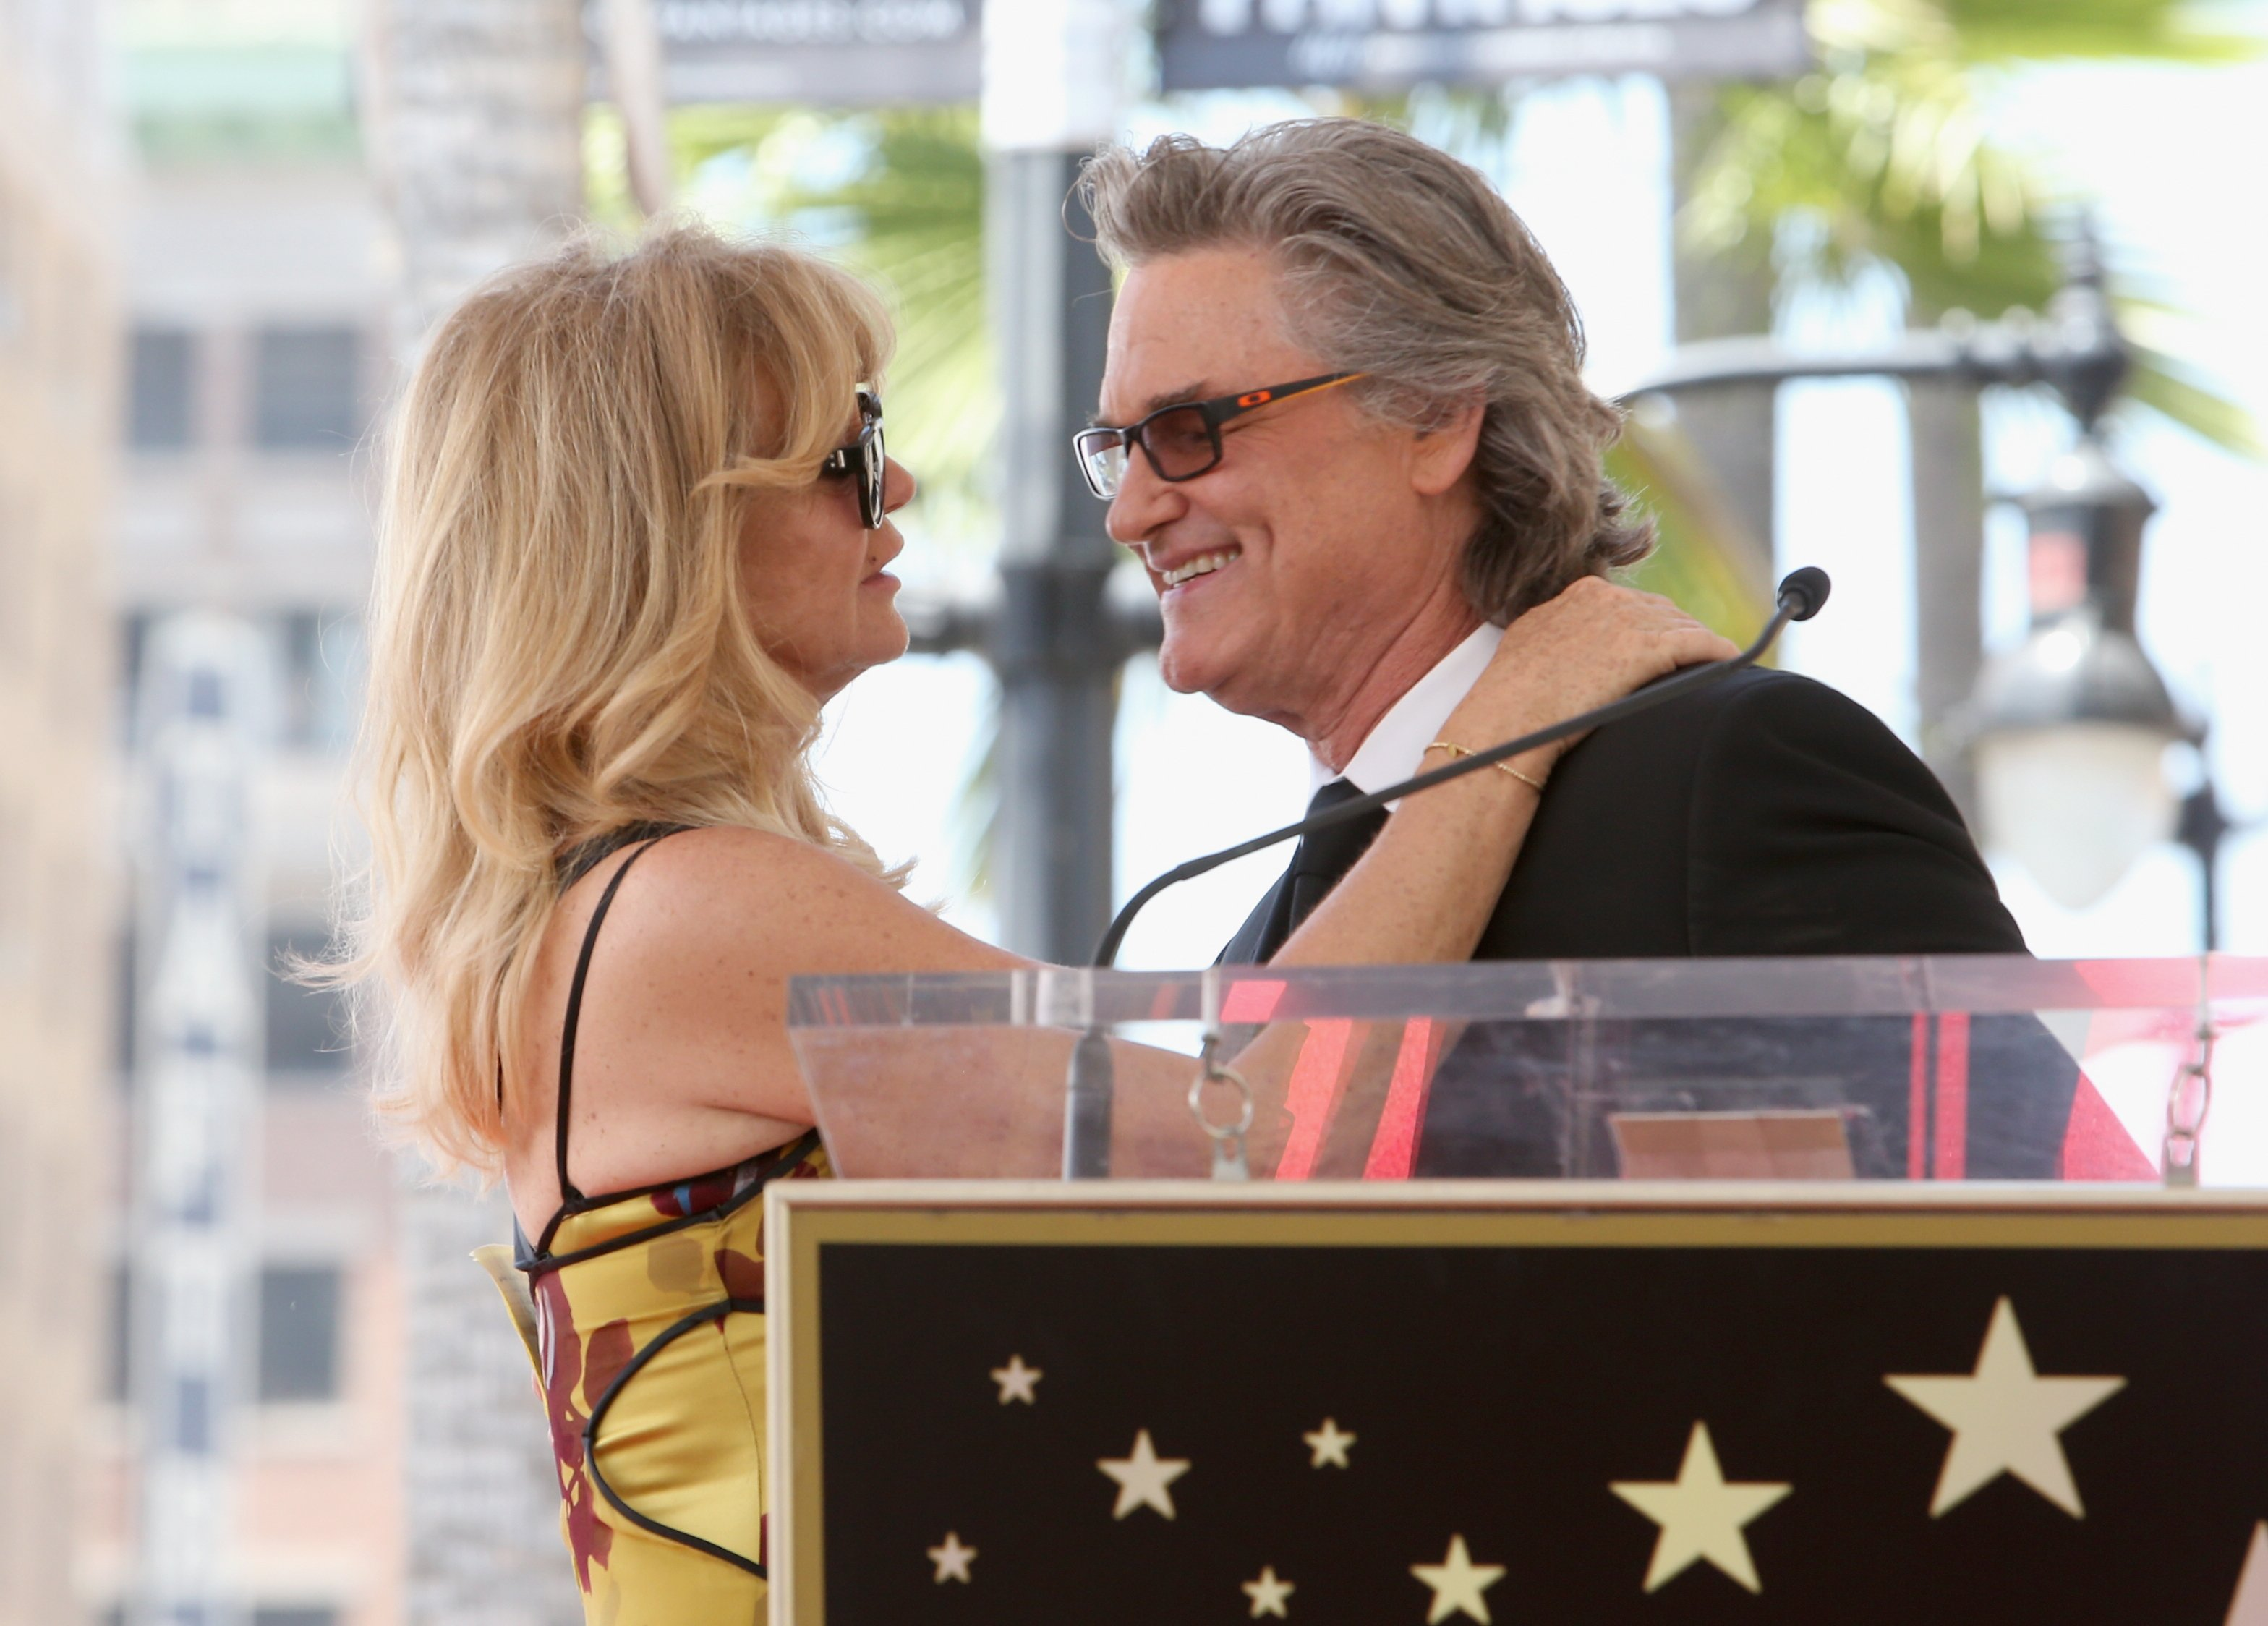 Goldie Hawn and Kurt Russell are honored with a Star on the Hollywood Walk of Fame in California on May 4, 2017 | Photo: Getty Images